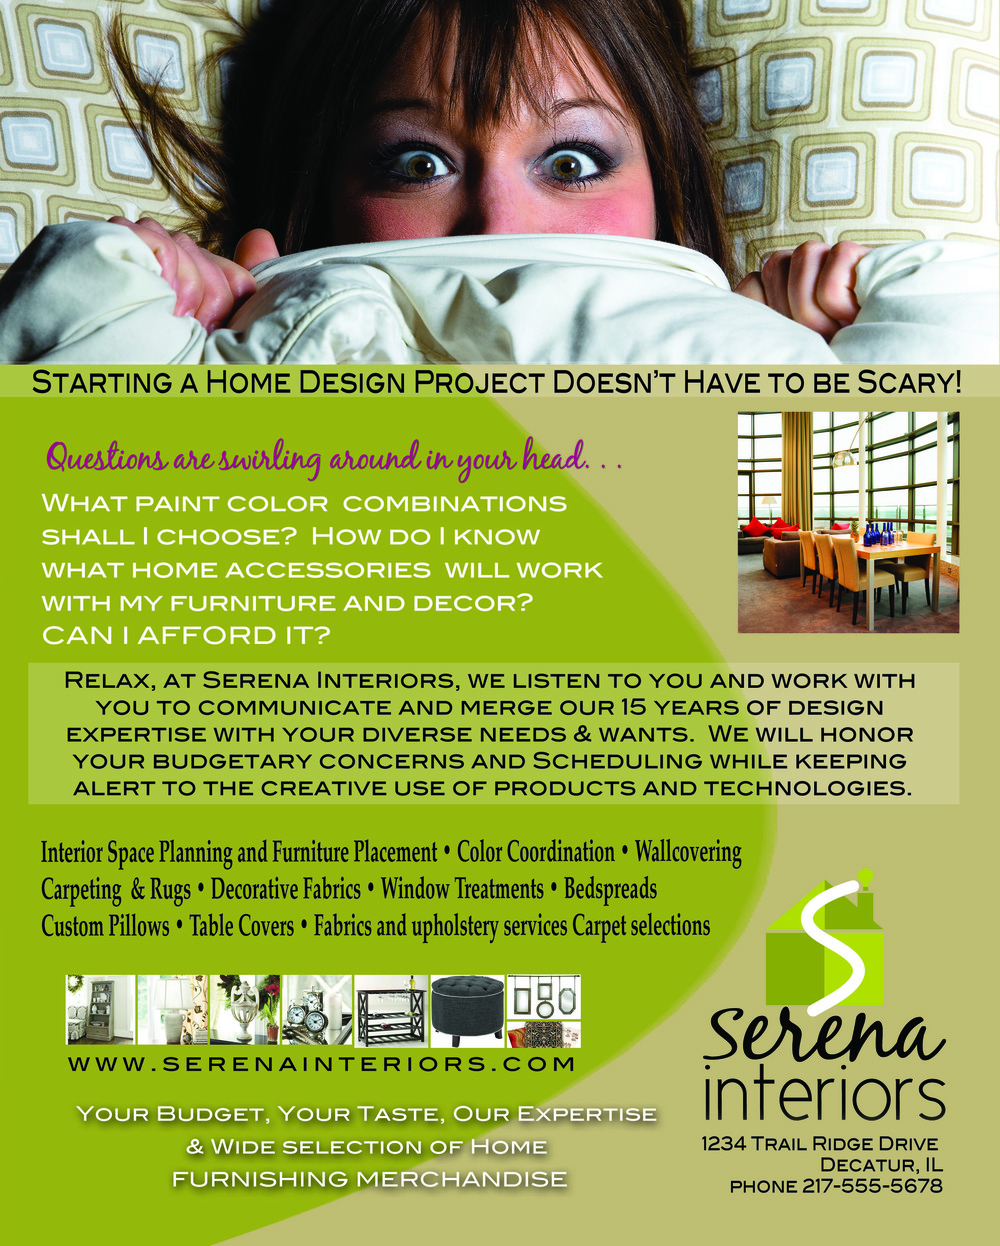 Serena Interiors Advertisement